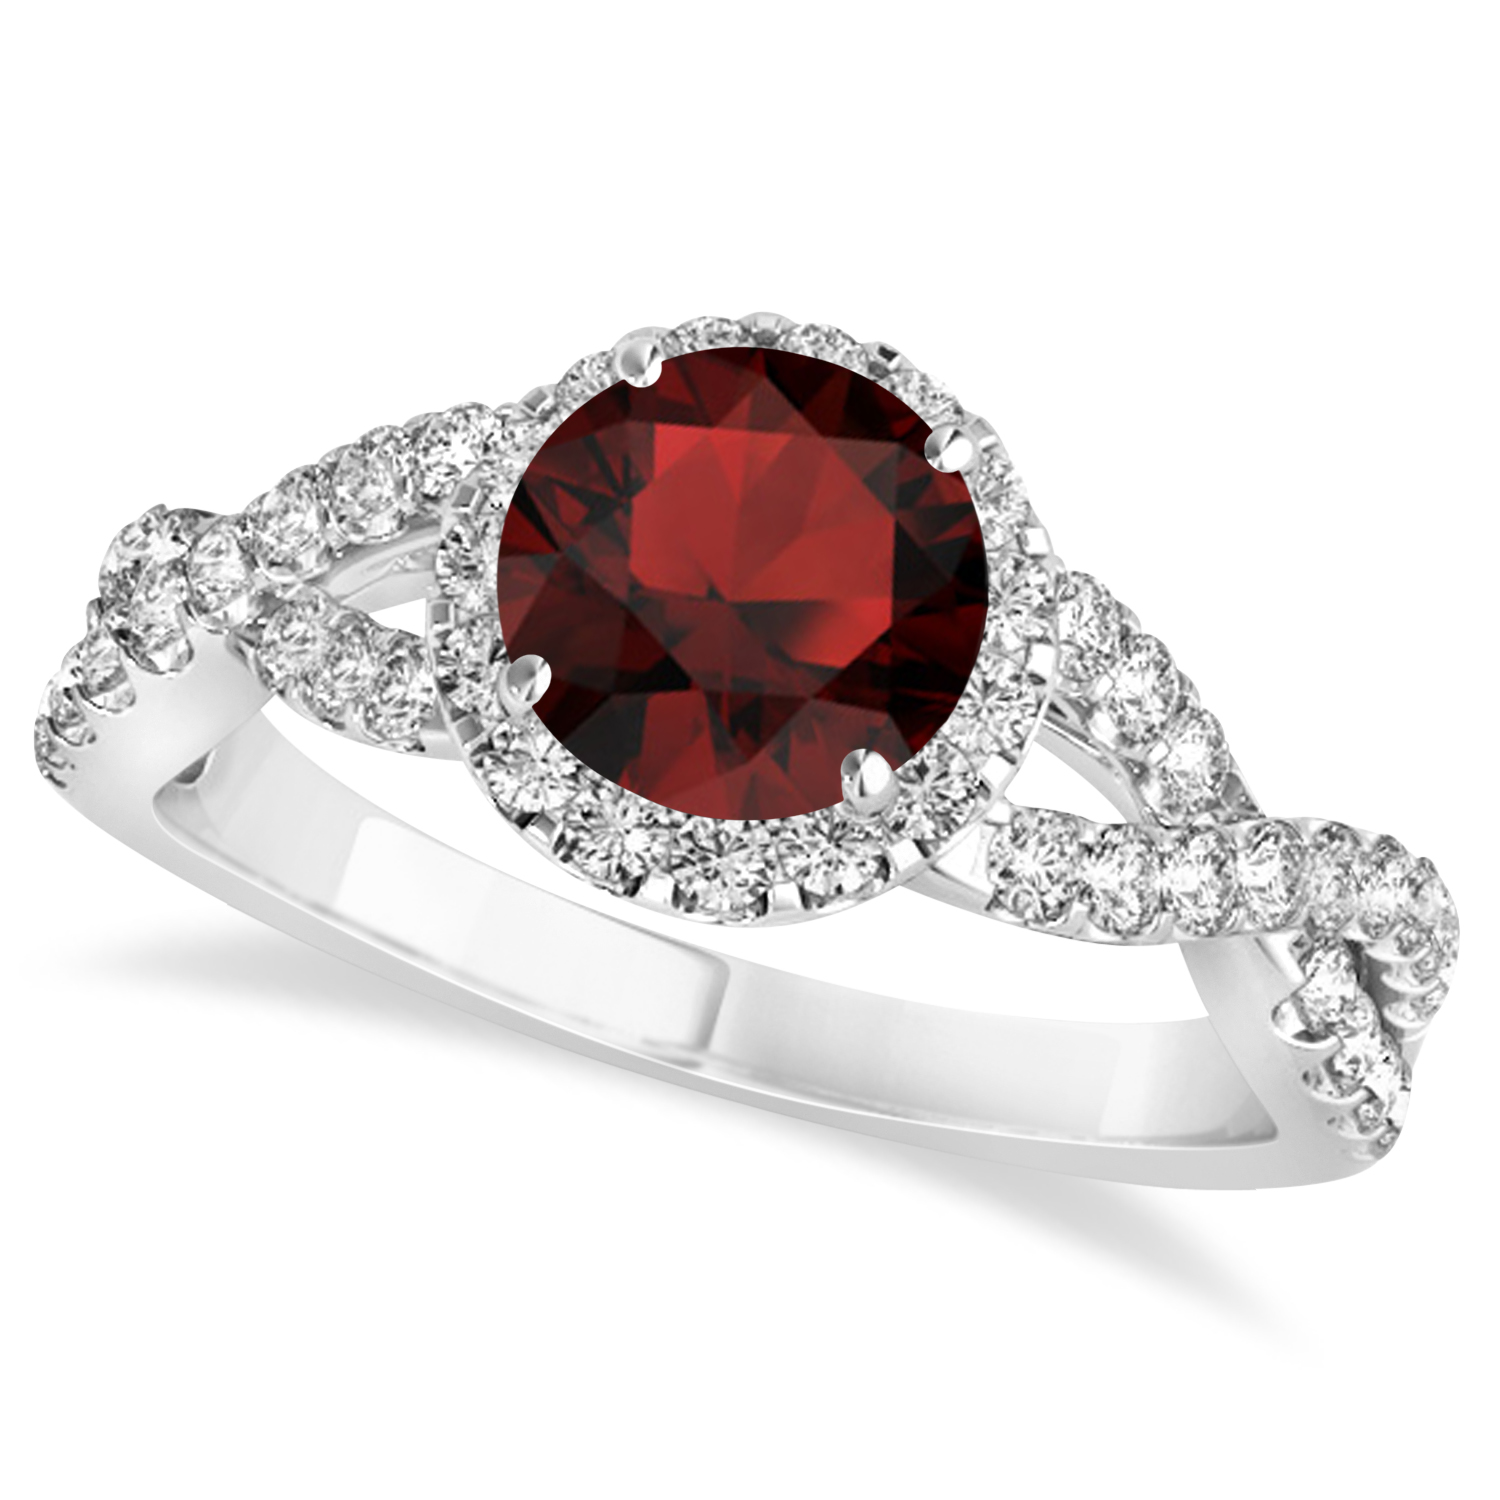 Garnet & Diamond Twisted Engagement Ring 14k White Gold 1.50ct